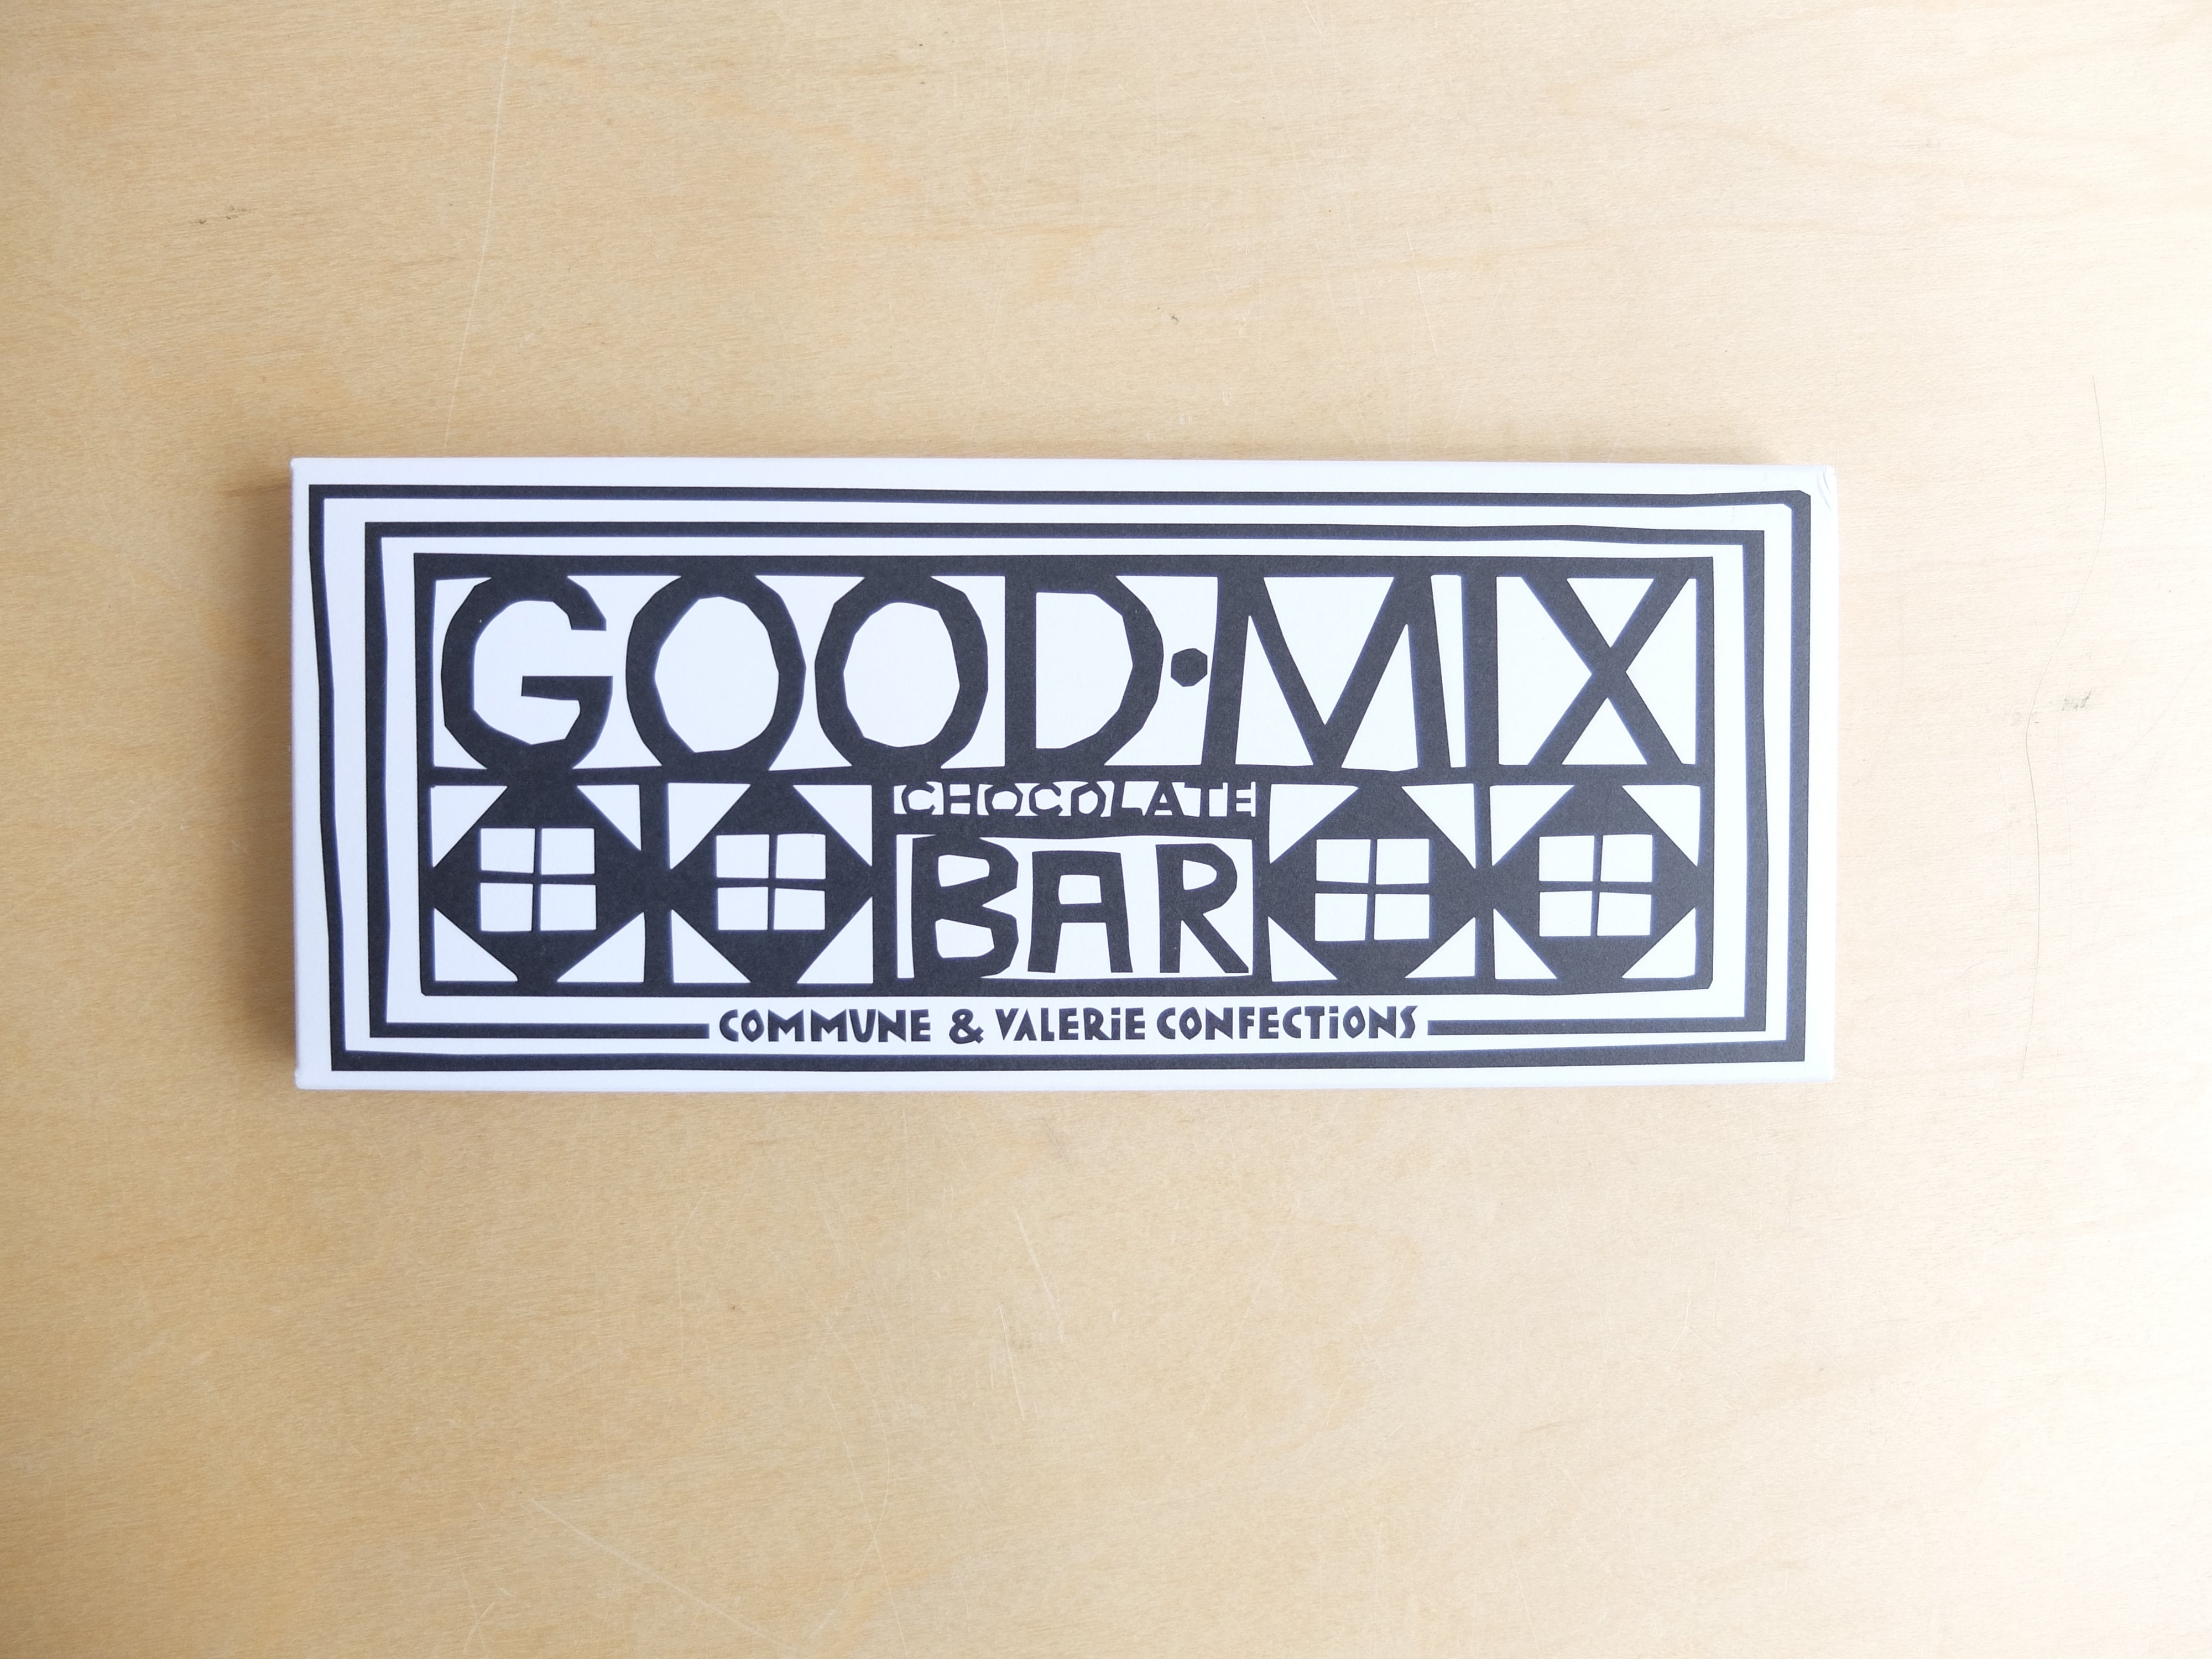 The Good Mix Bar